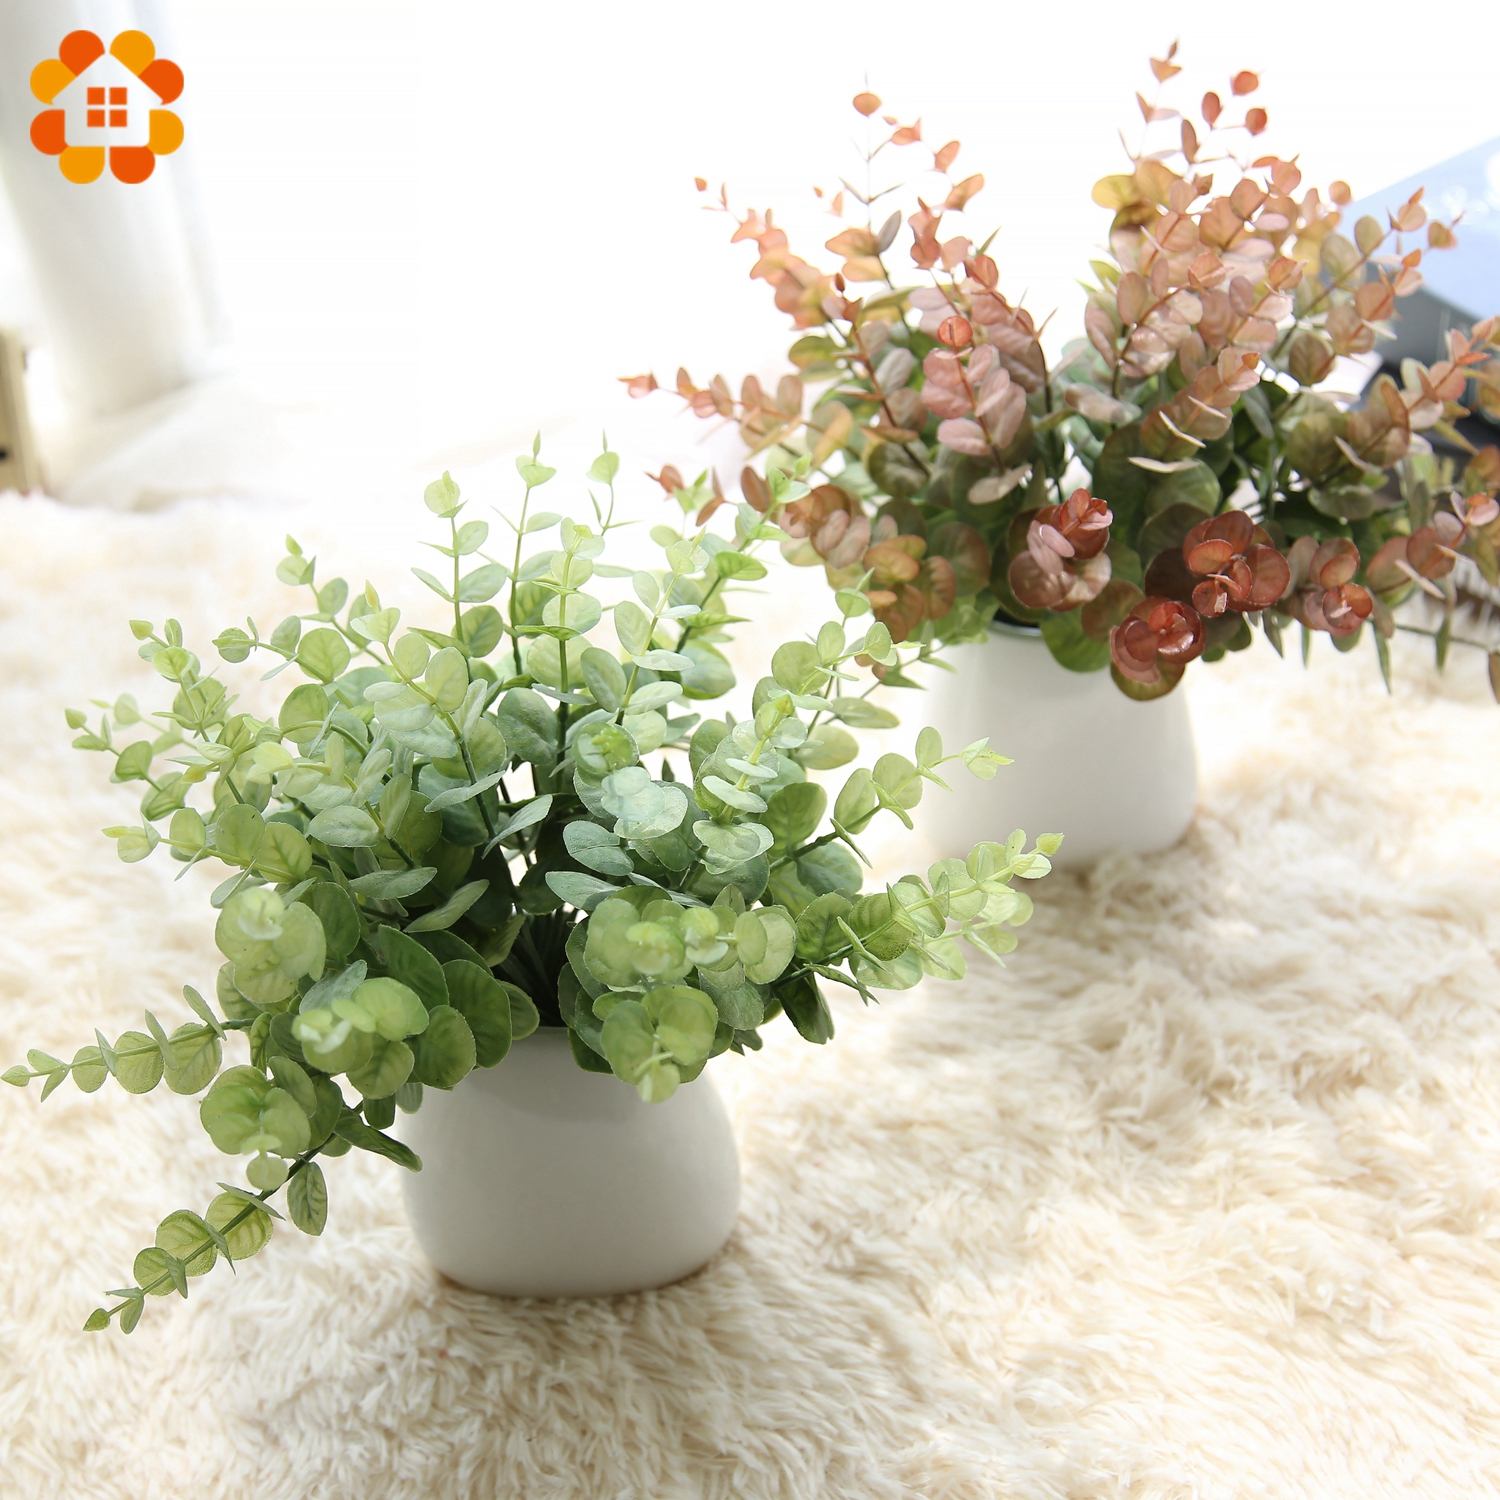 Artificial Decorations Artificial & Dried Flowers Fake Grass Rattan Classic Green Home Plastic Diy Simulation Plant Garden Party Selected Material